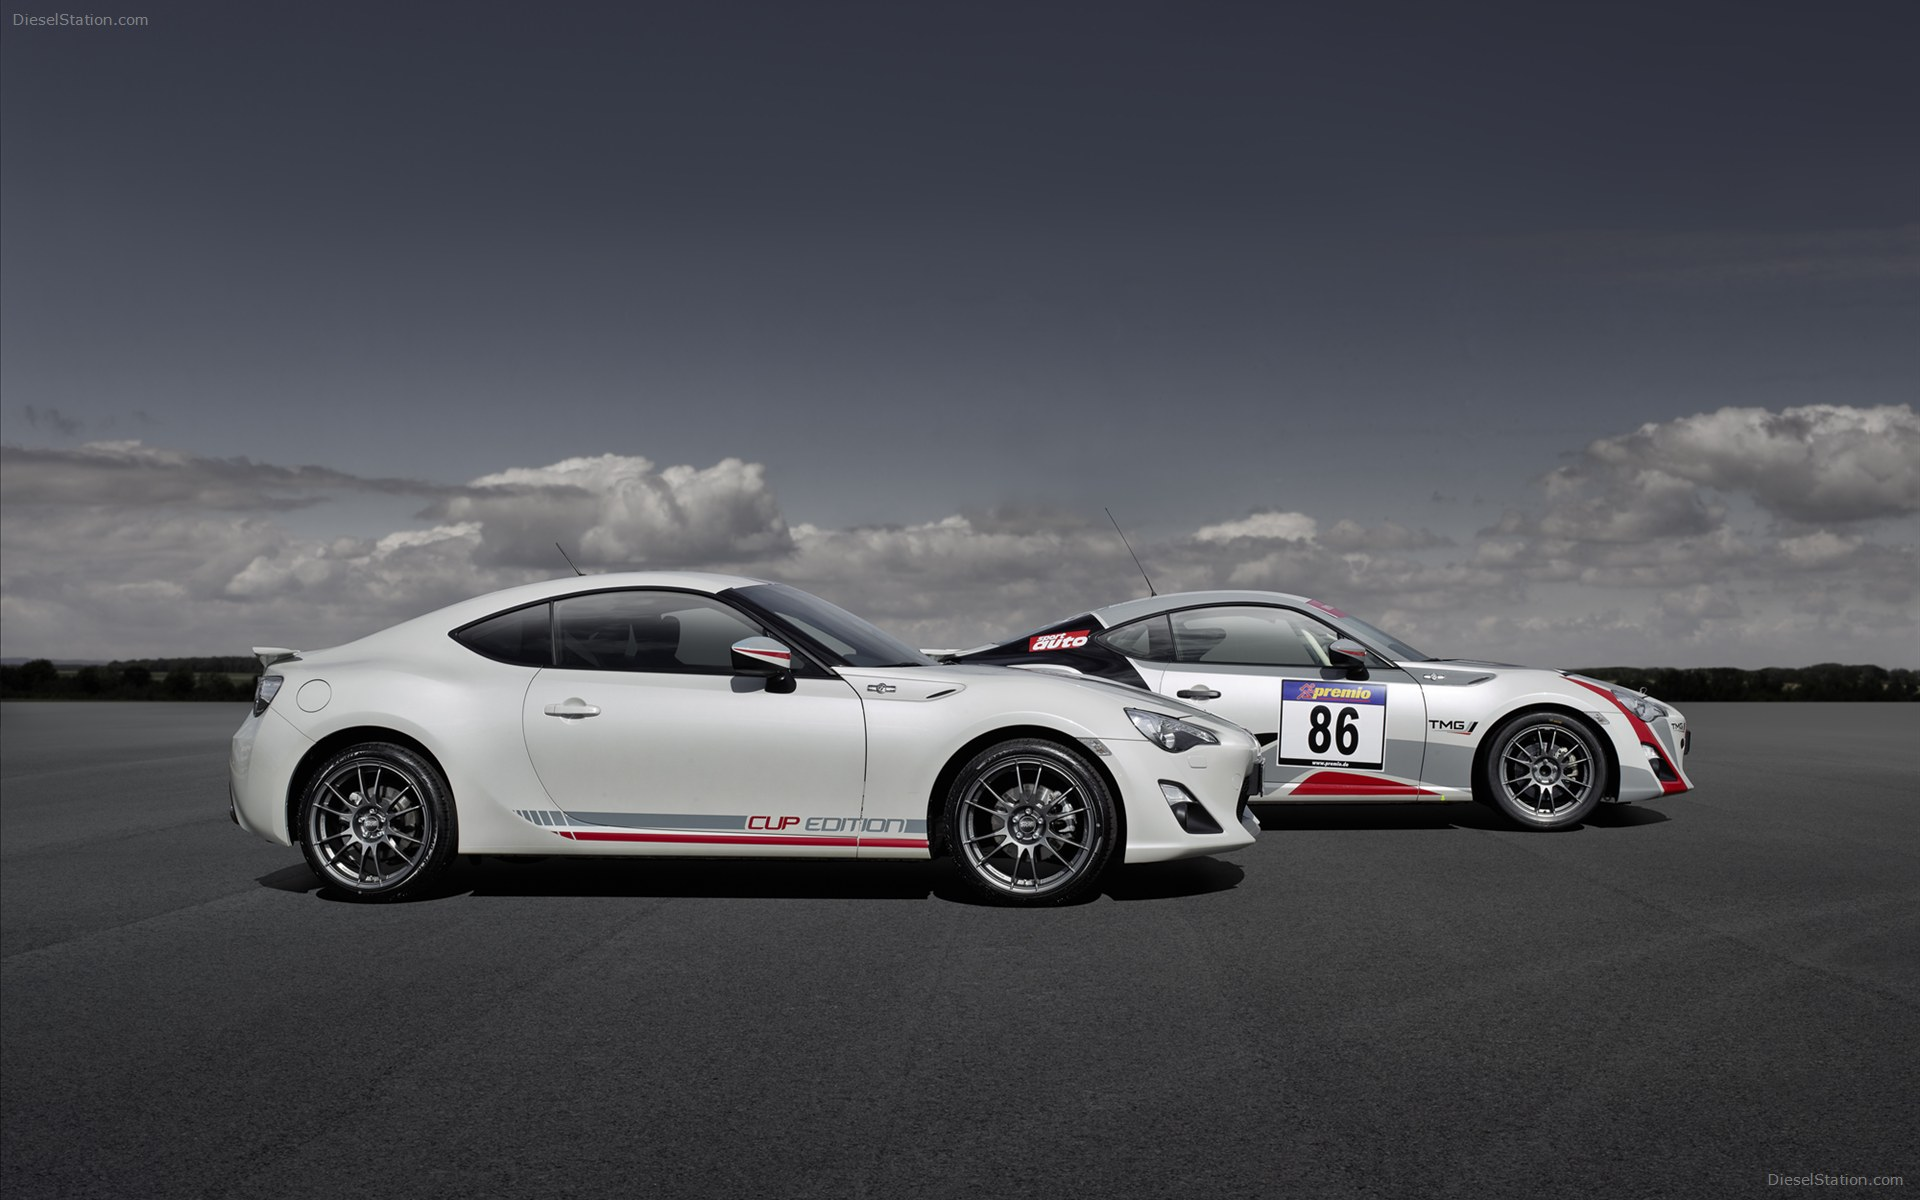 Toyota GT86 Cup Edition 2013 Widescreen Exotic Car Photo 1920x1200